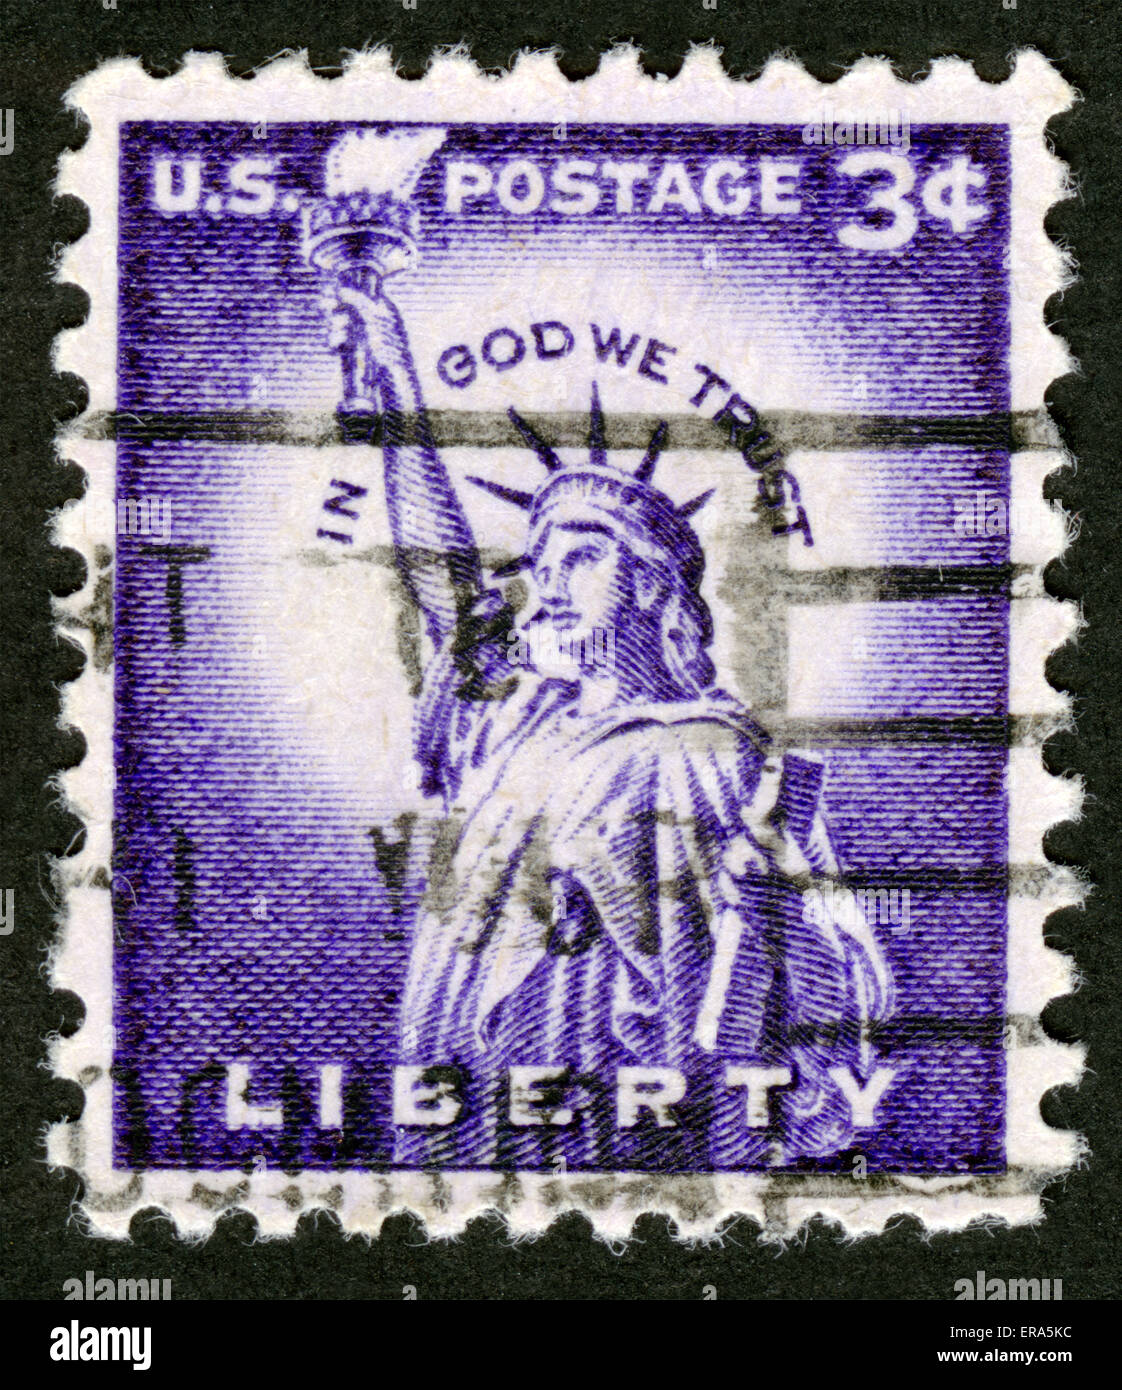 USA,Circa 1954,Statue of Liberty on USA stamp, IN GOD WE